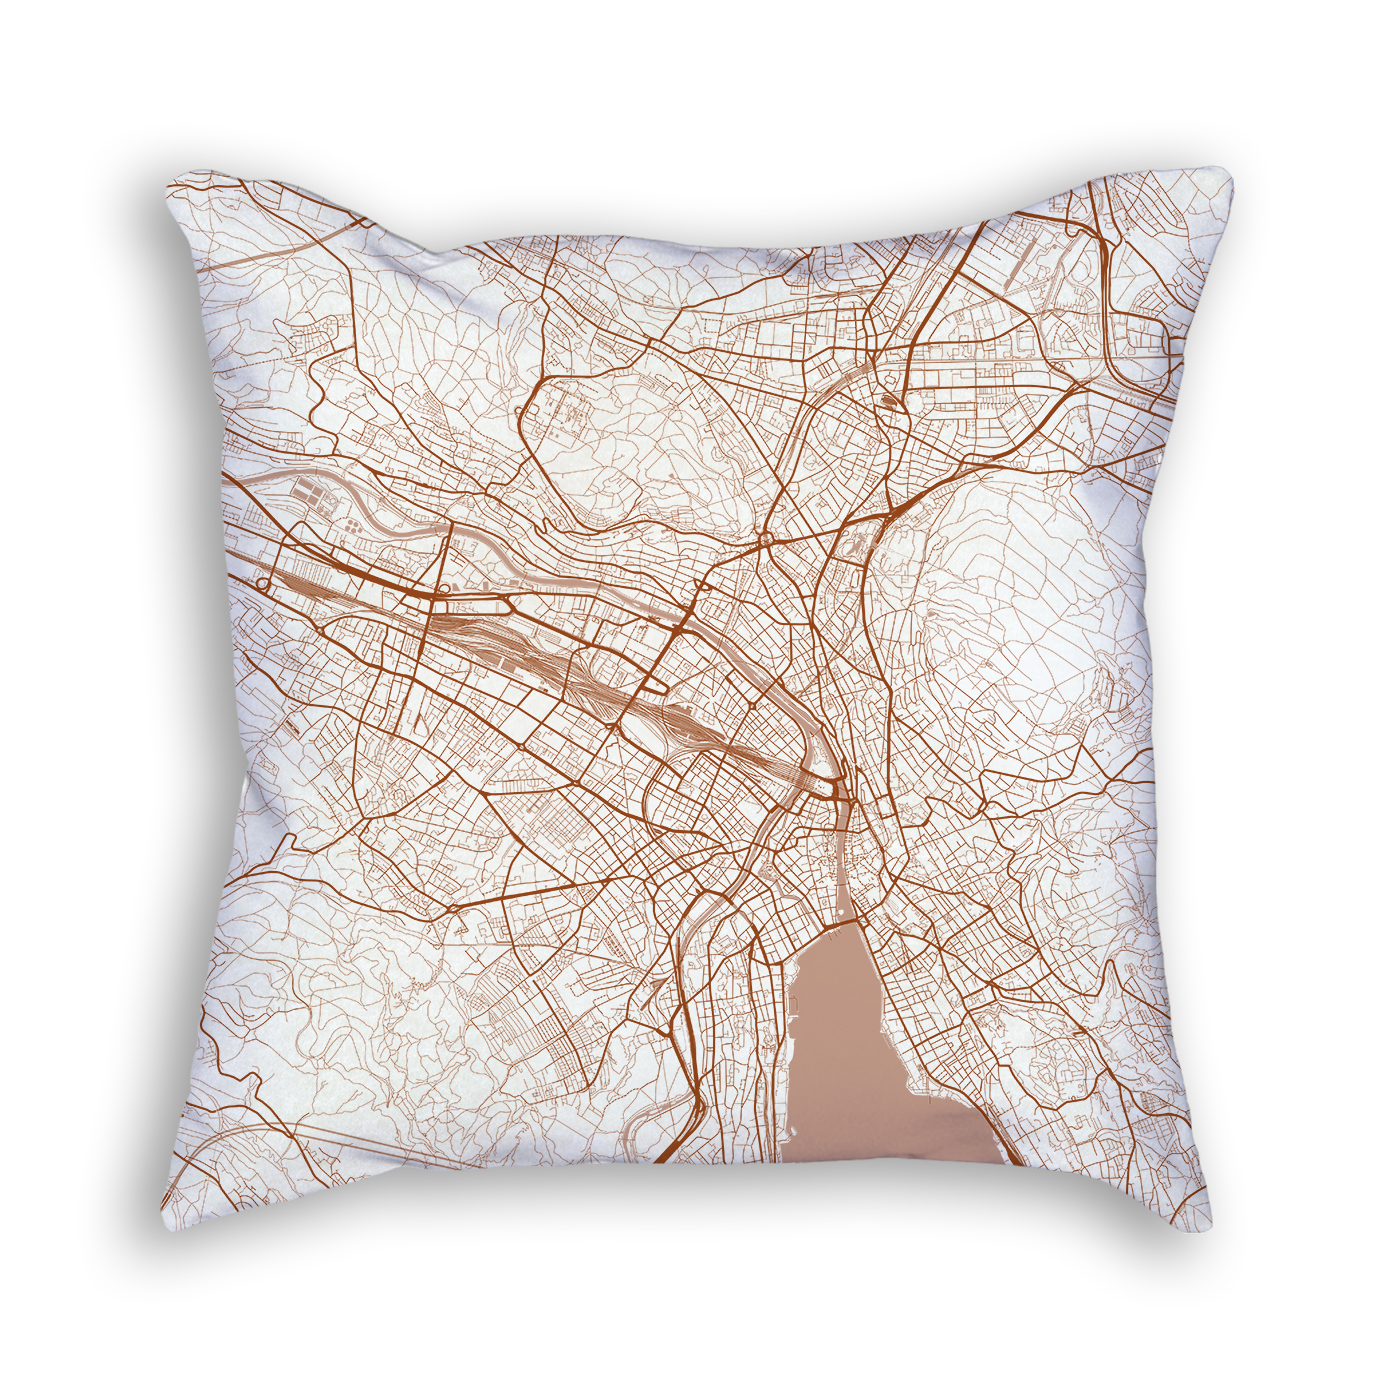 Zurich Switzerland City Map Art Decorative Throw Pillow